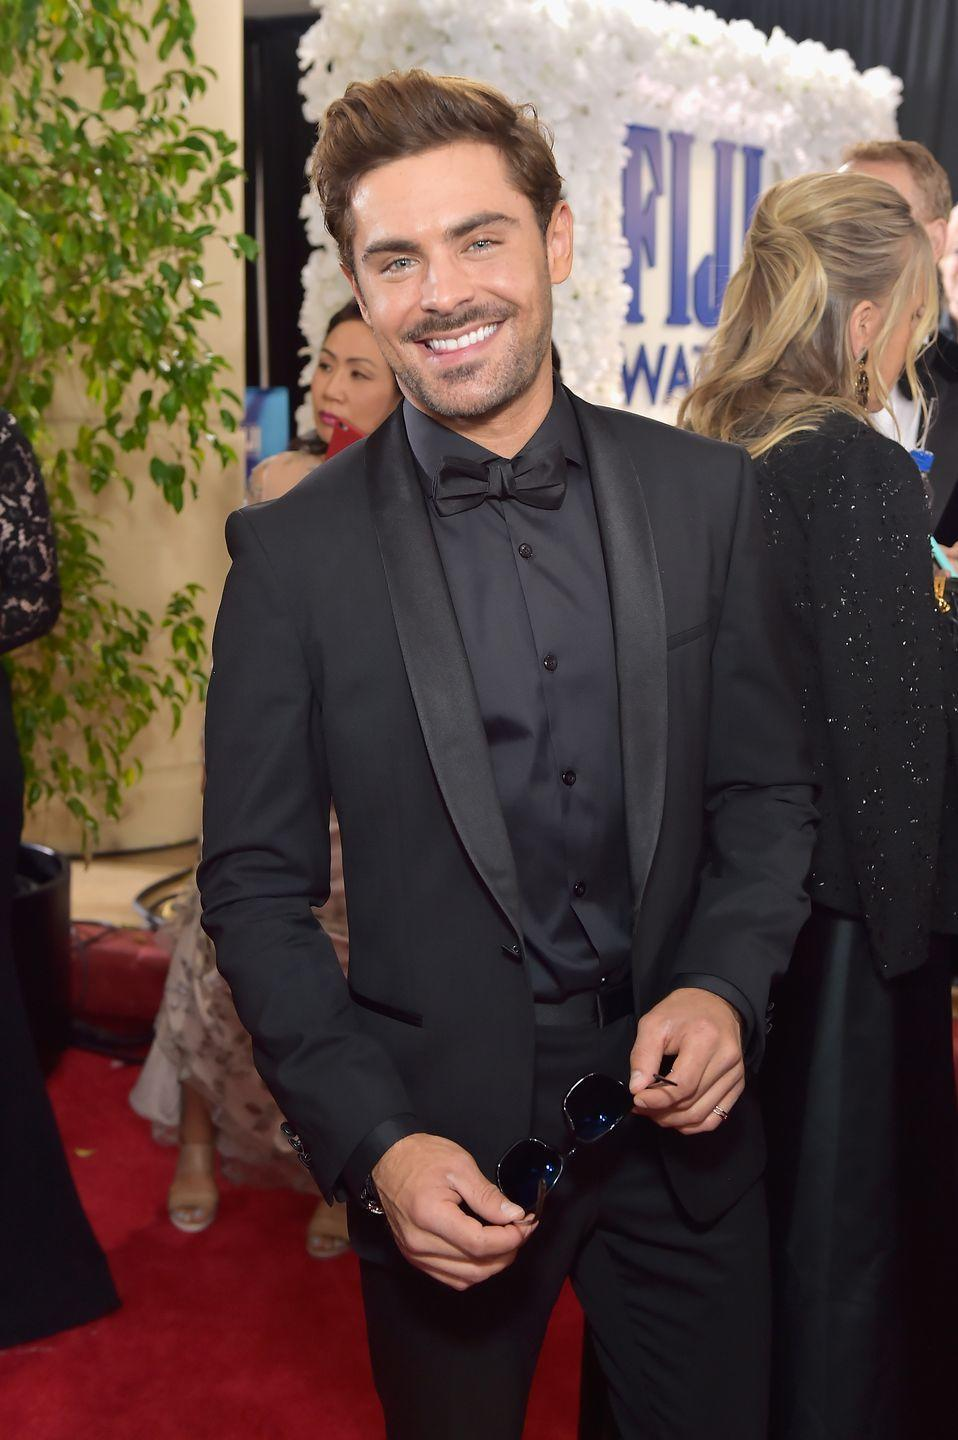 "<p>The star stopped drinking in 2013 following a brief stint in rehab. In a 2016 interview with <a href=""https://www.elle.com/culture/celebrities/news/a35753/zac-efron-cherchez-la-femme-2016/"" rel=""nofollow noopener"" target=""_blank"" data-ylk=""slk:US ELLE"" class=""link rapid-noclick-resp"">US ELLE</a>, the actor said that sobriety has helped him find structure in life.</p><p>'There was a moment when my morning routine was, like, Get up and Google yourself. But that stopped, dramatically and instantly, probably three years ago,' he said.</p><p>'I realised that viewing yourself through other people's pictures is not living your own life. I wasn't really being myself. A lot of my hobbies had gone out the window. I couldn't skateboard or surf for fear of being followed. Crossing the line of fear is what leads to greatness.' </p>"